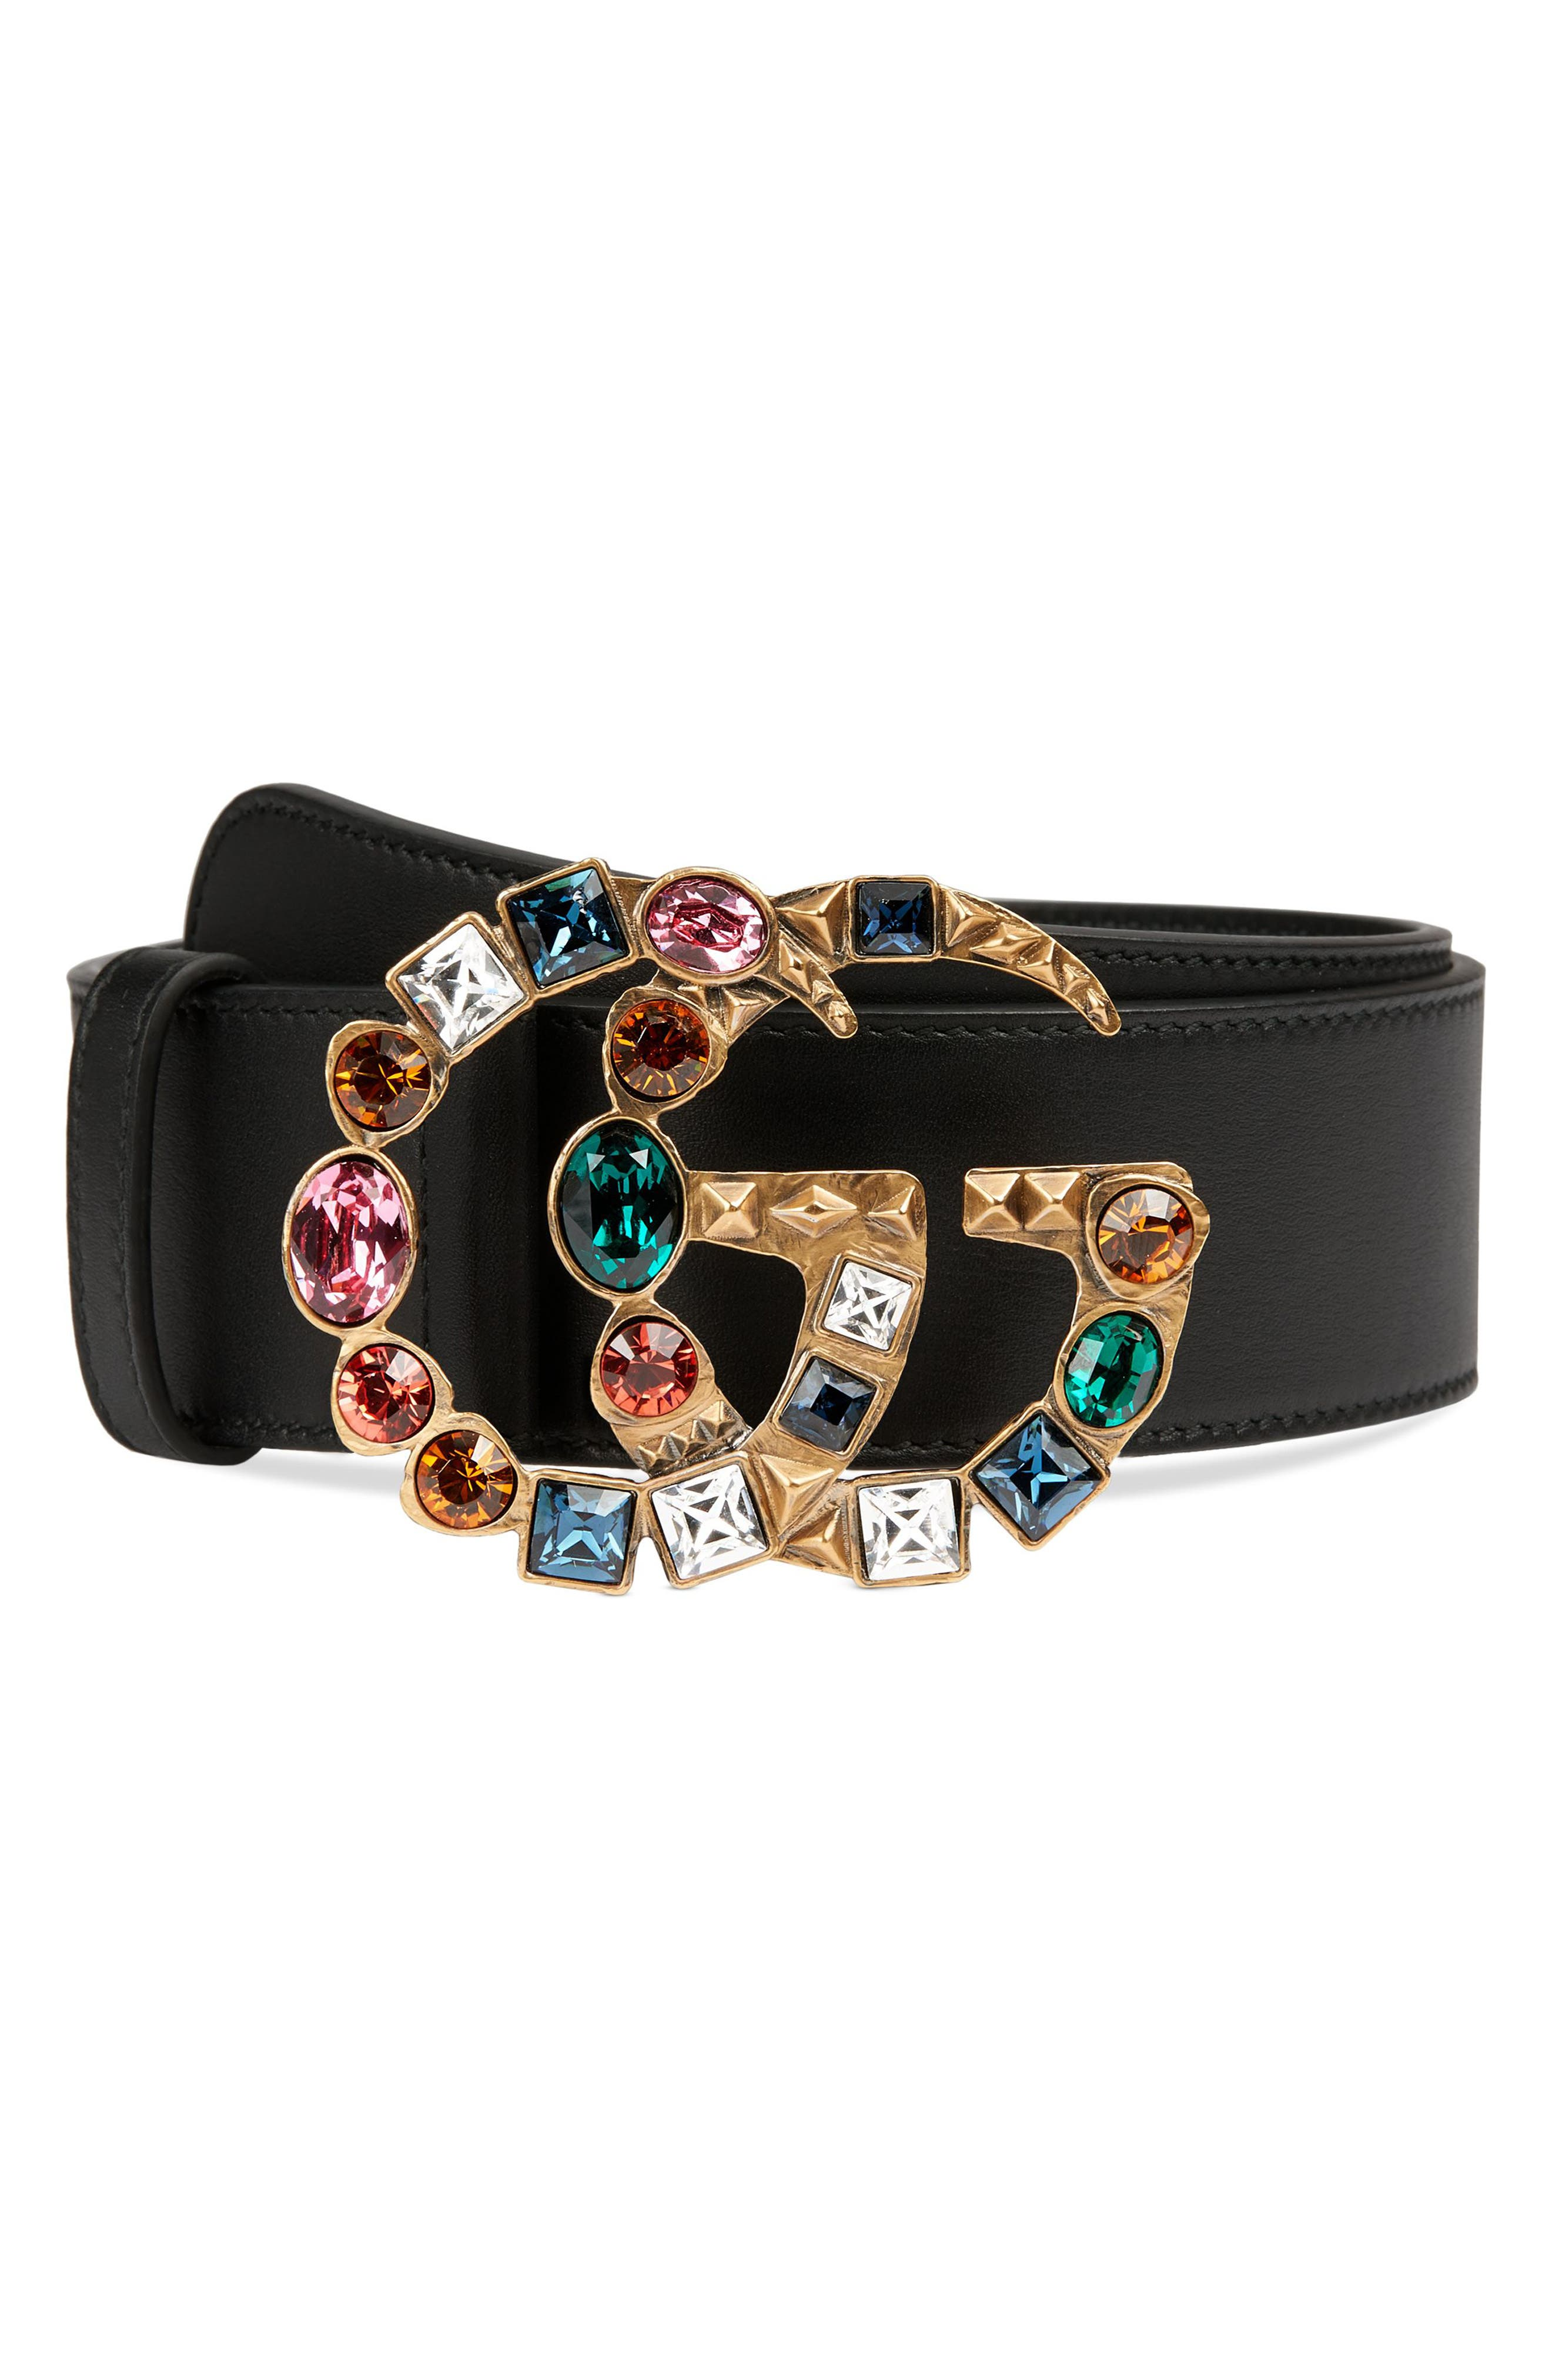 GG Marmont Crystal Buckle Leather Belt,                             Main thumbnail 1, color,                             Nero/ Multi